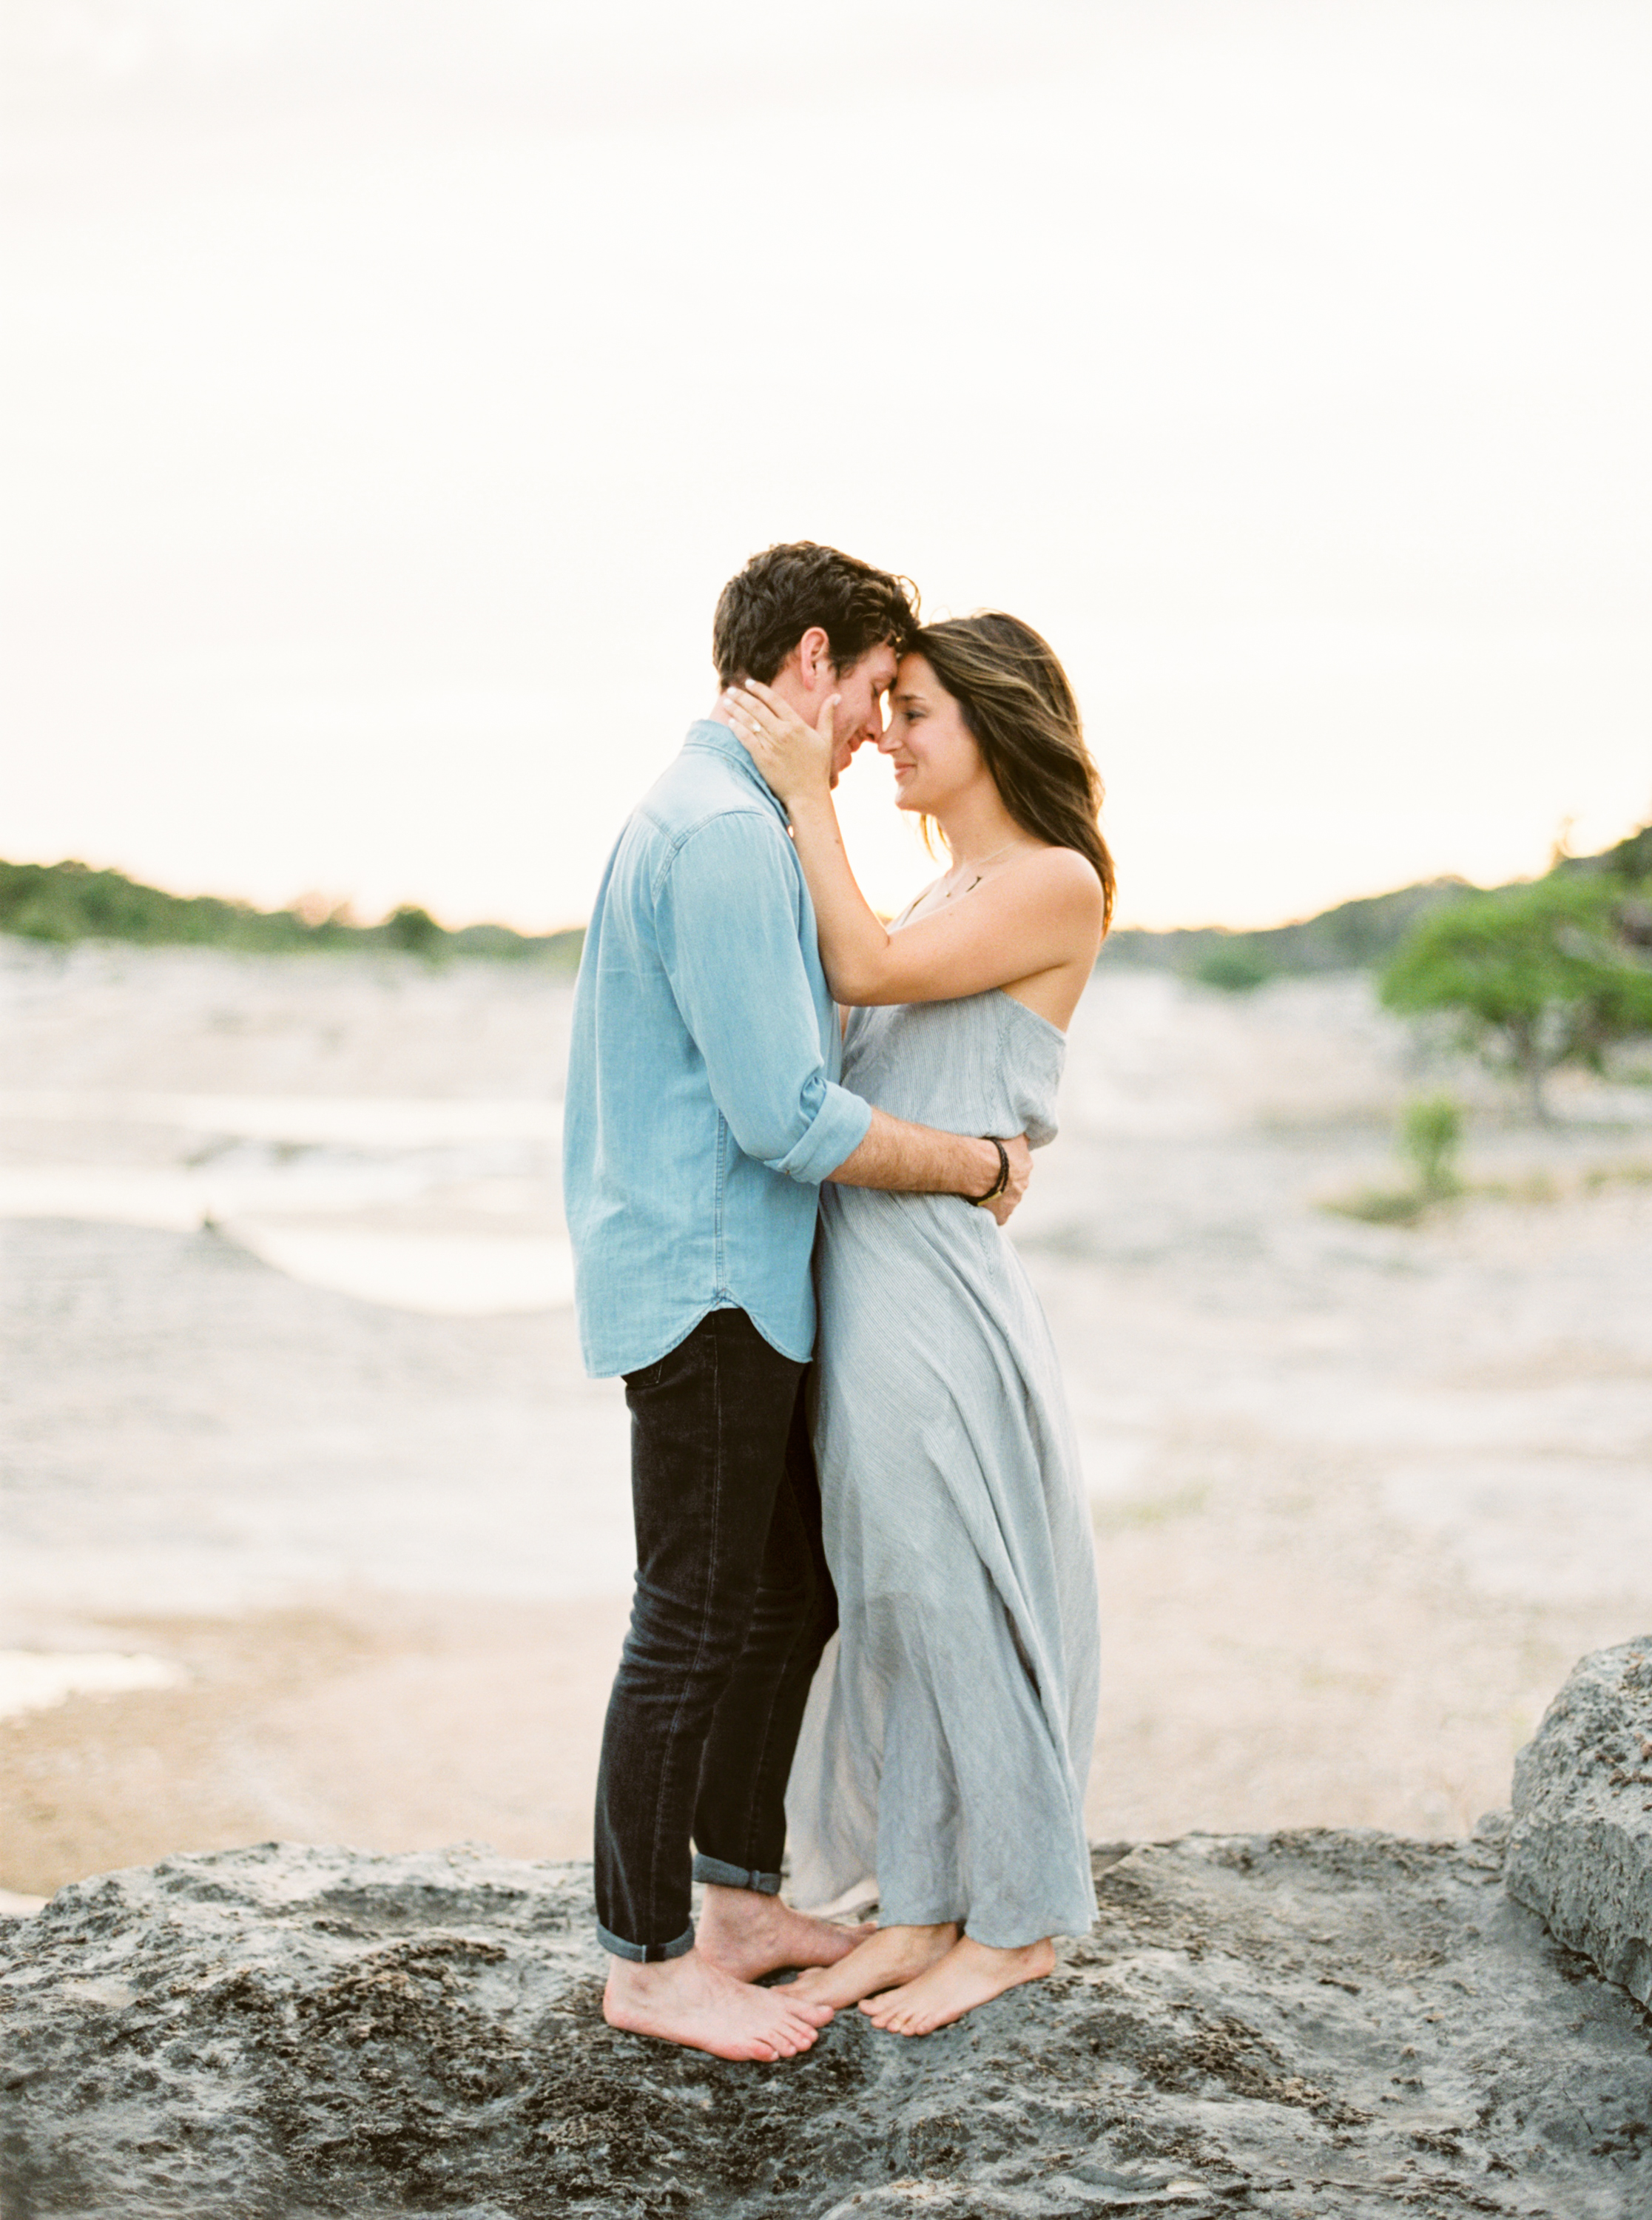 Engagement Session Outfits-21.jpg